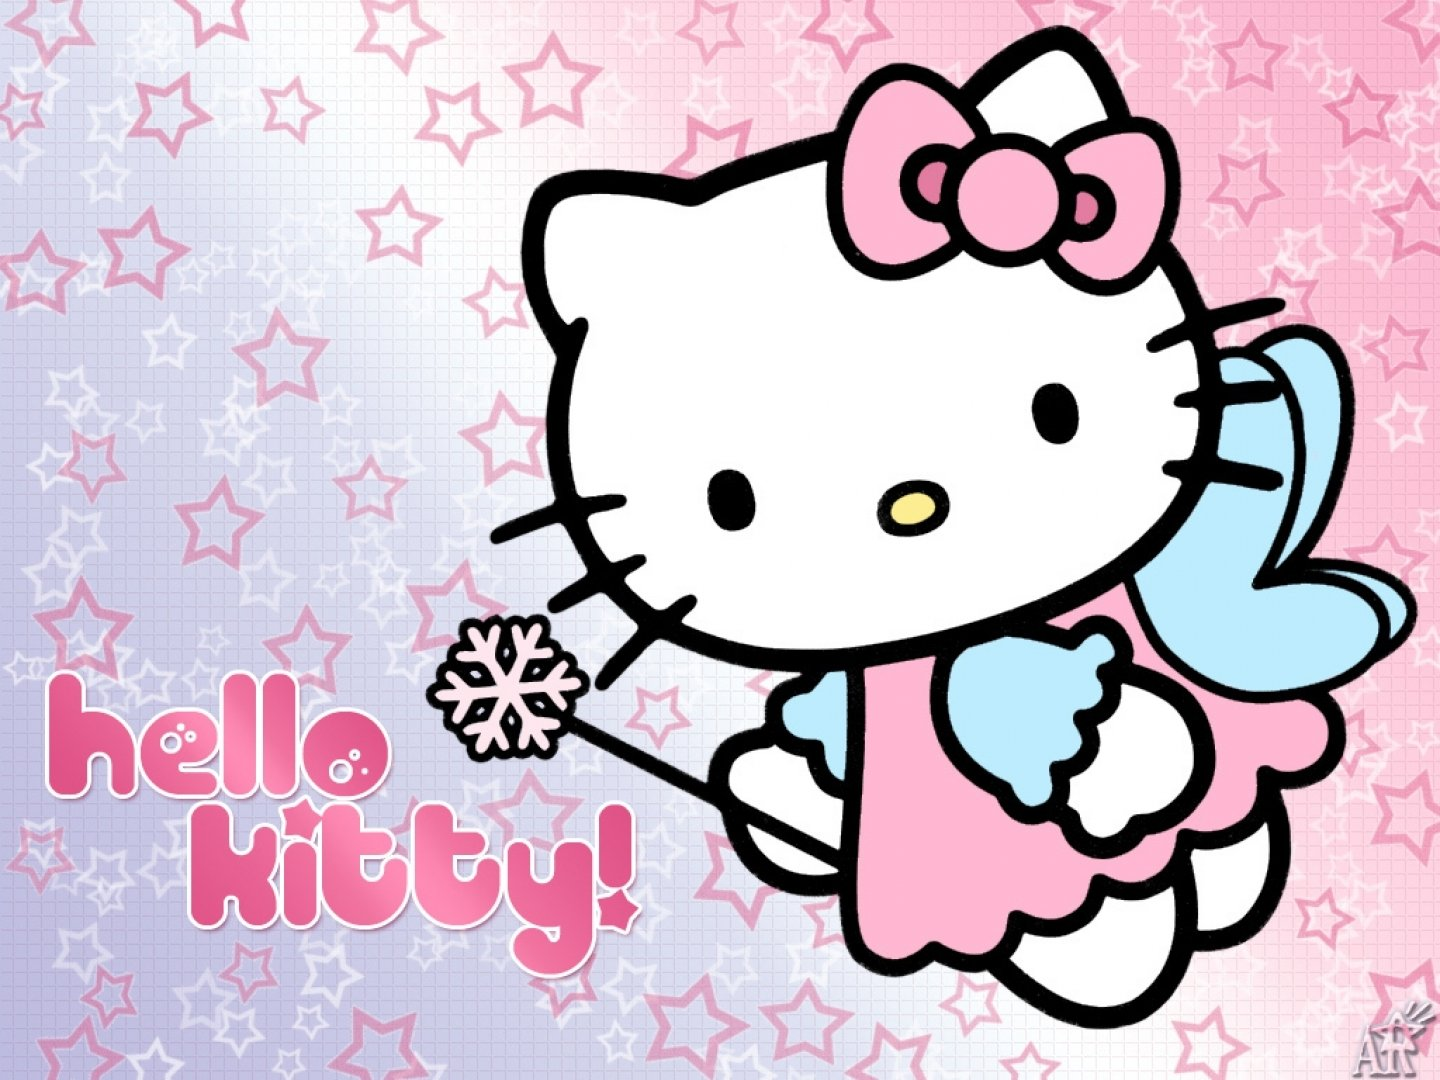 Top Wallpaper Hello Kitty Rose - thumb-1920-471873  Collection_246032.jpg